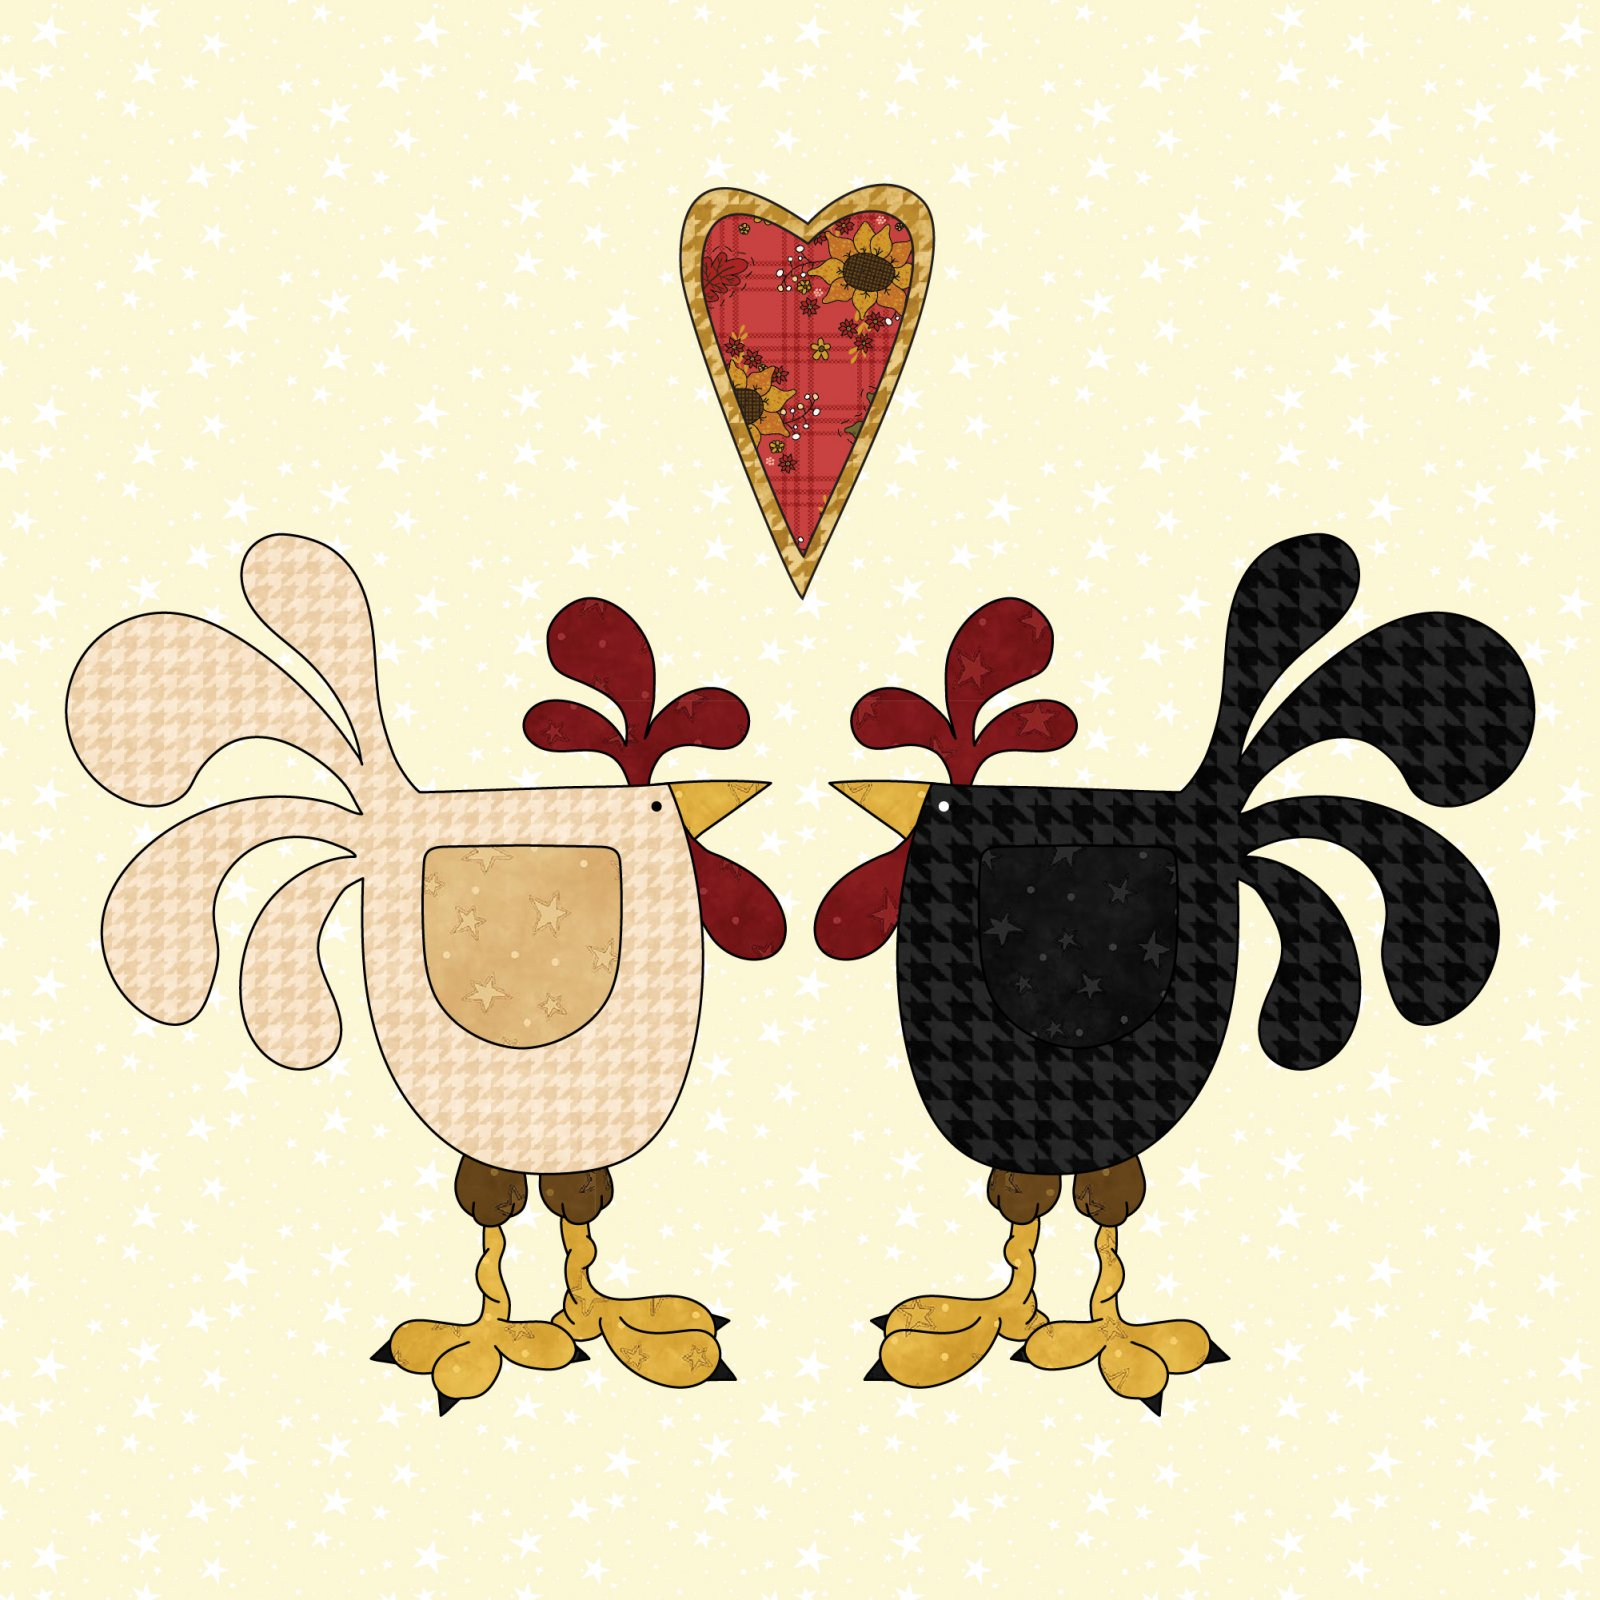 Chickens & Heart Precut Fused Applique Kit